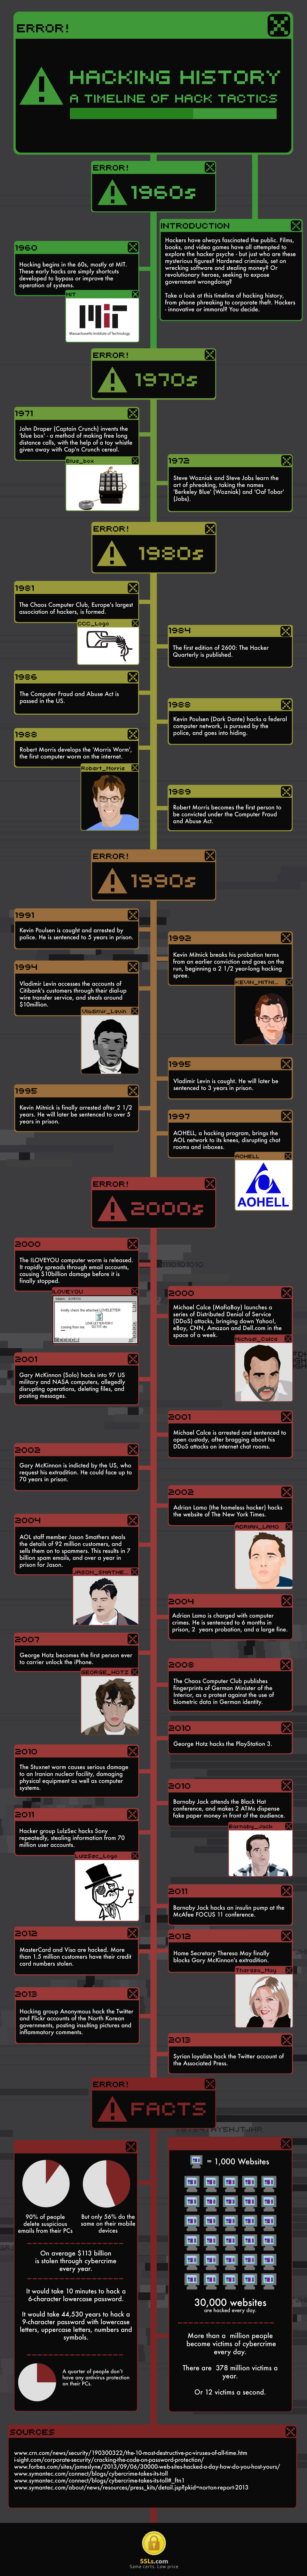 Hacking History Infographic